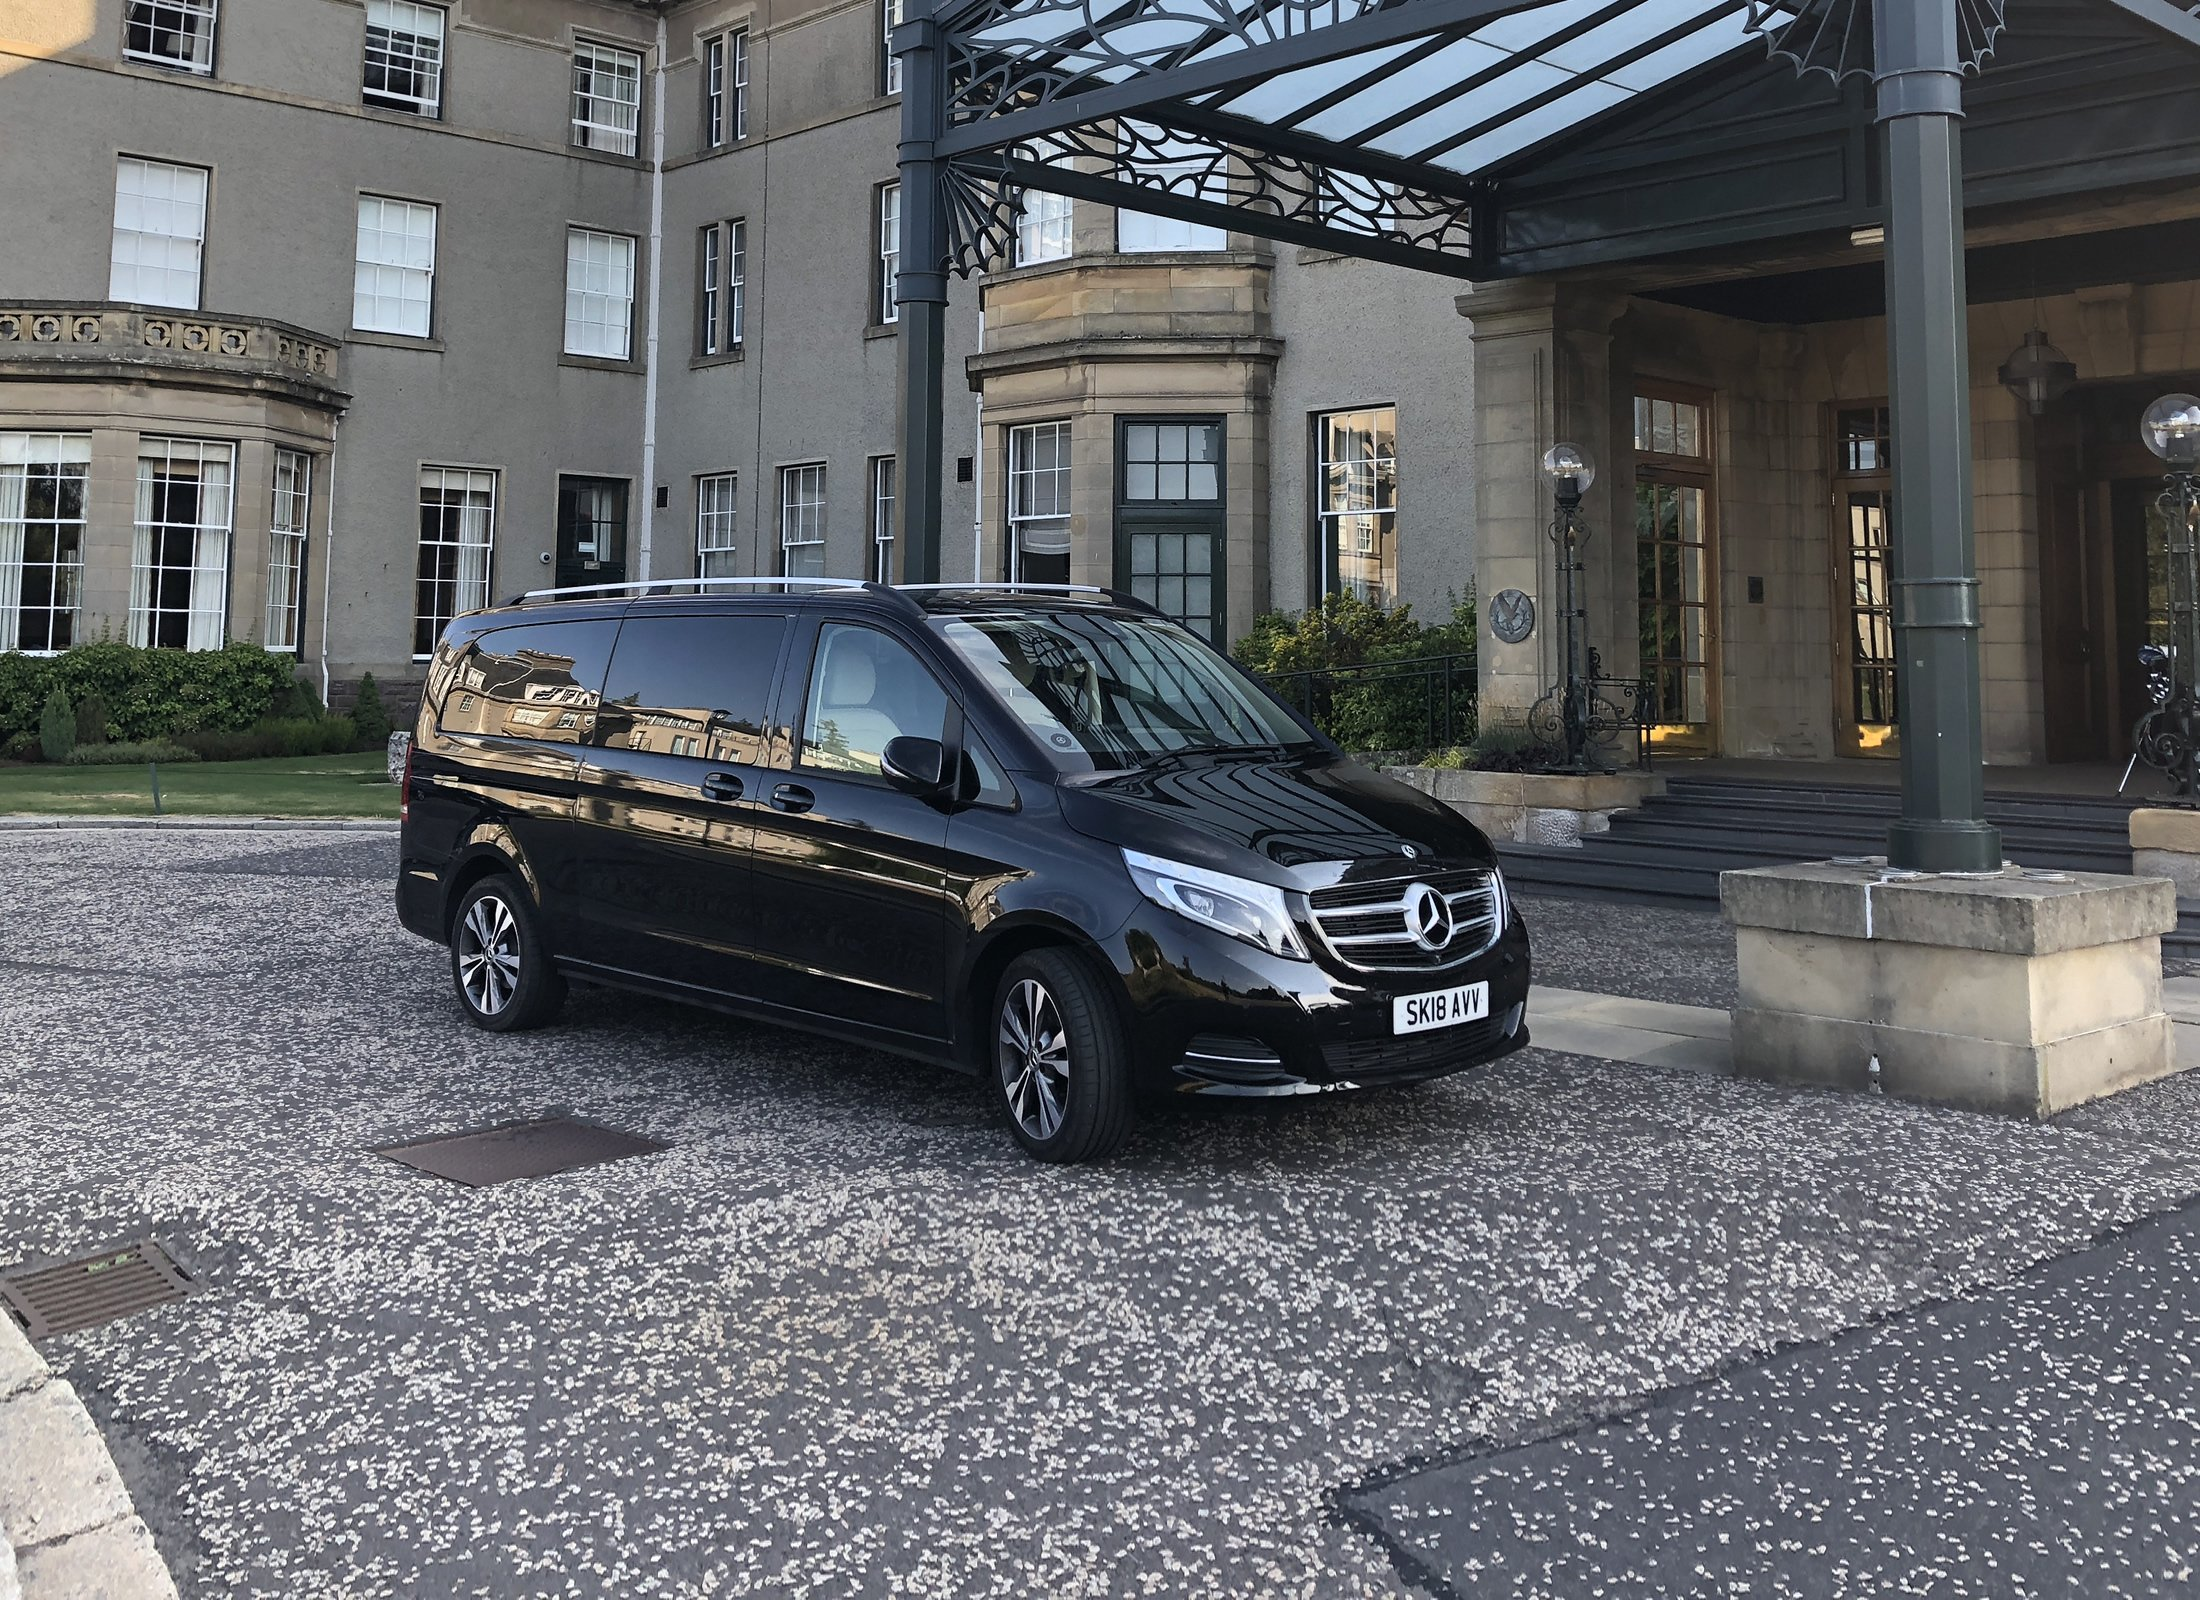 Mercedes V Class at Gleneagles Hotel